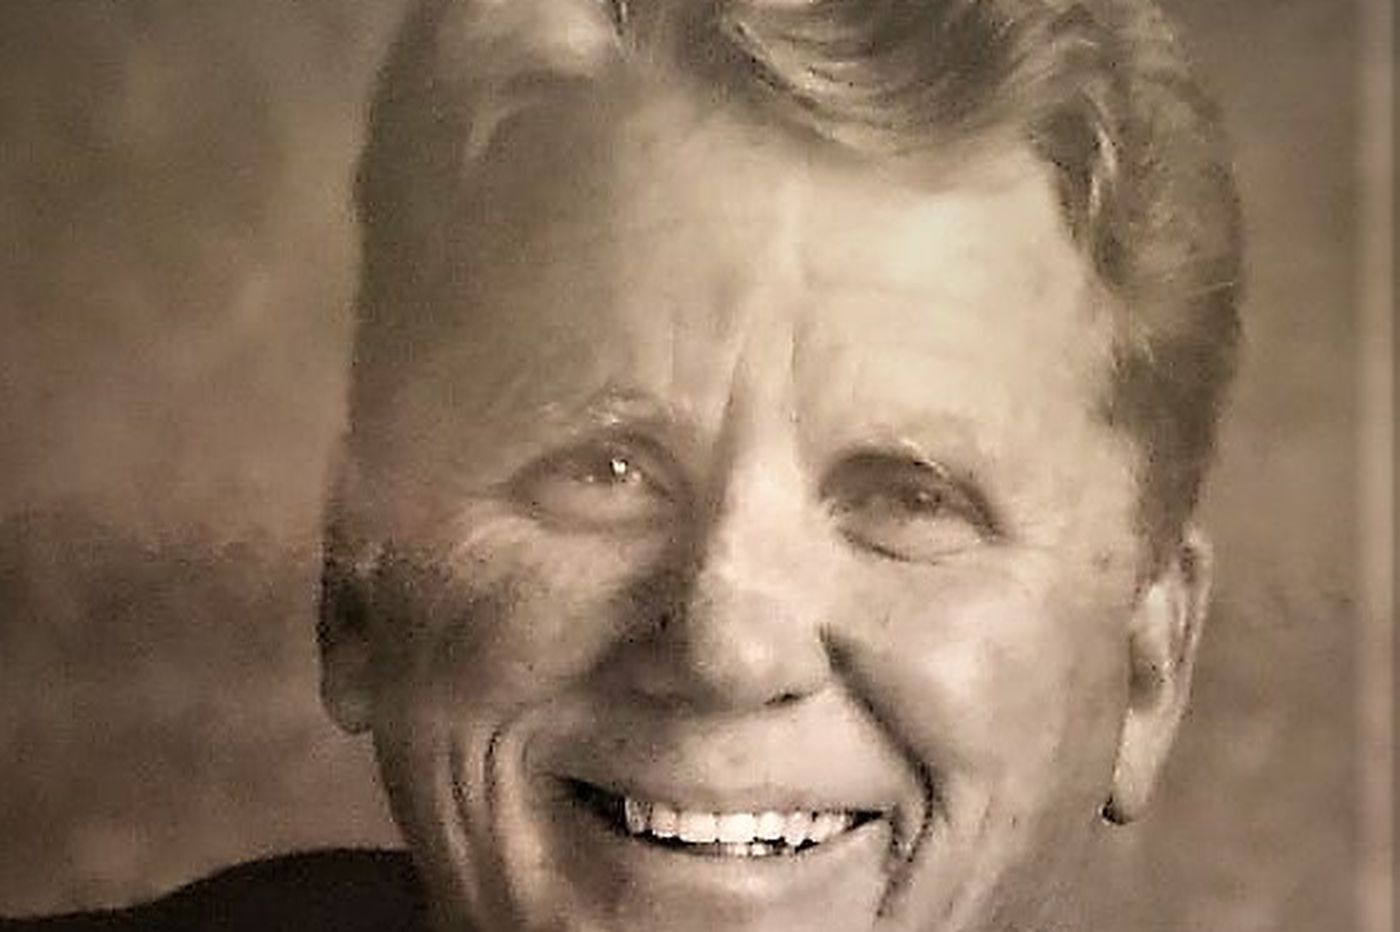 Parade set for Saturday to honor 'Franny' McIntyre, fancy brigade captain who died at 73